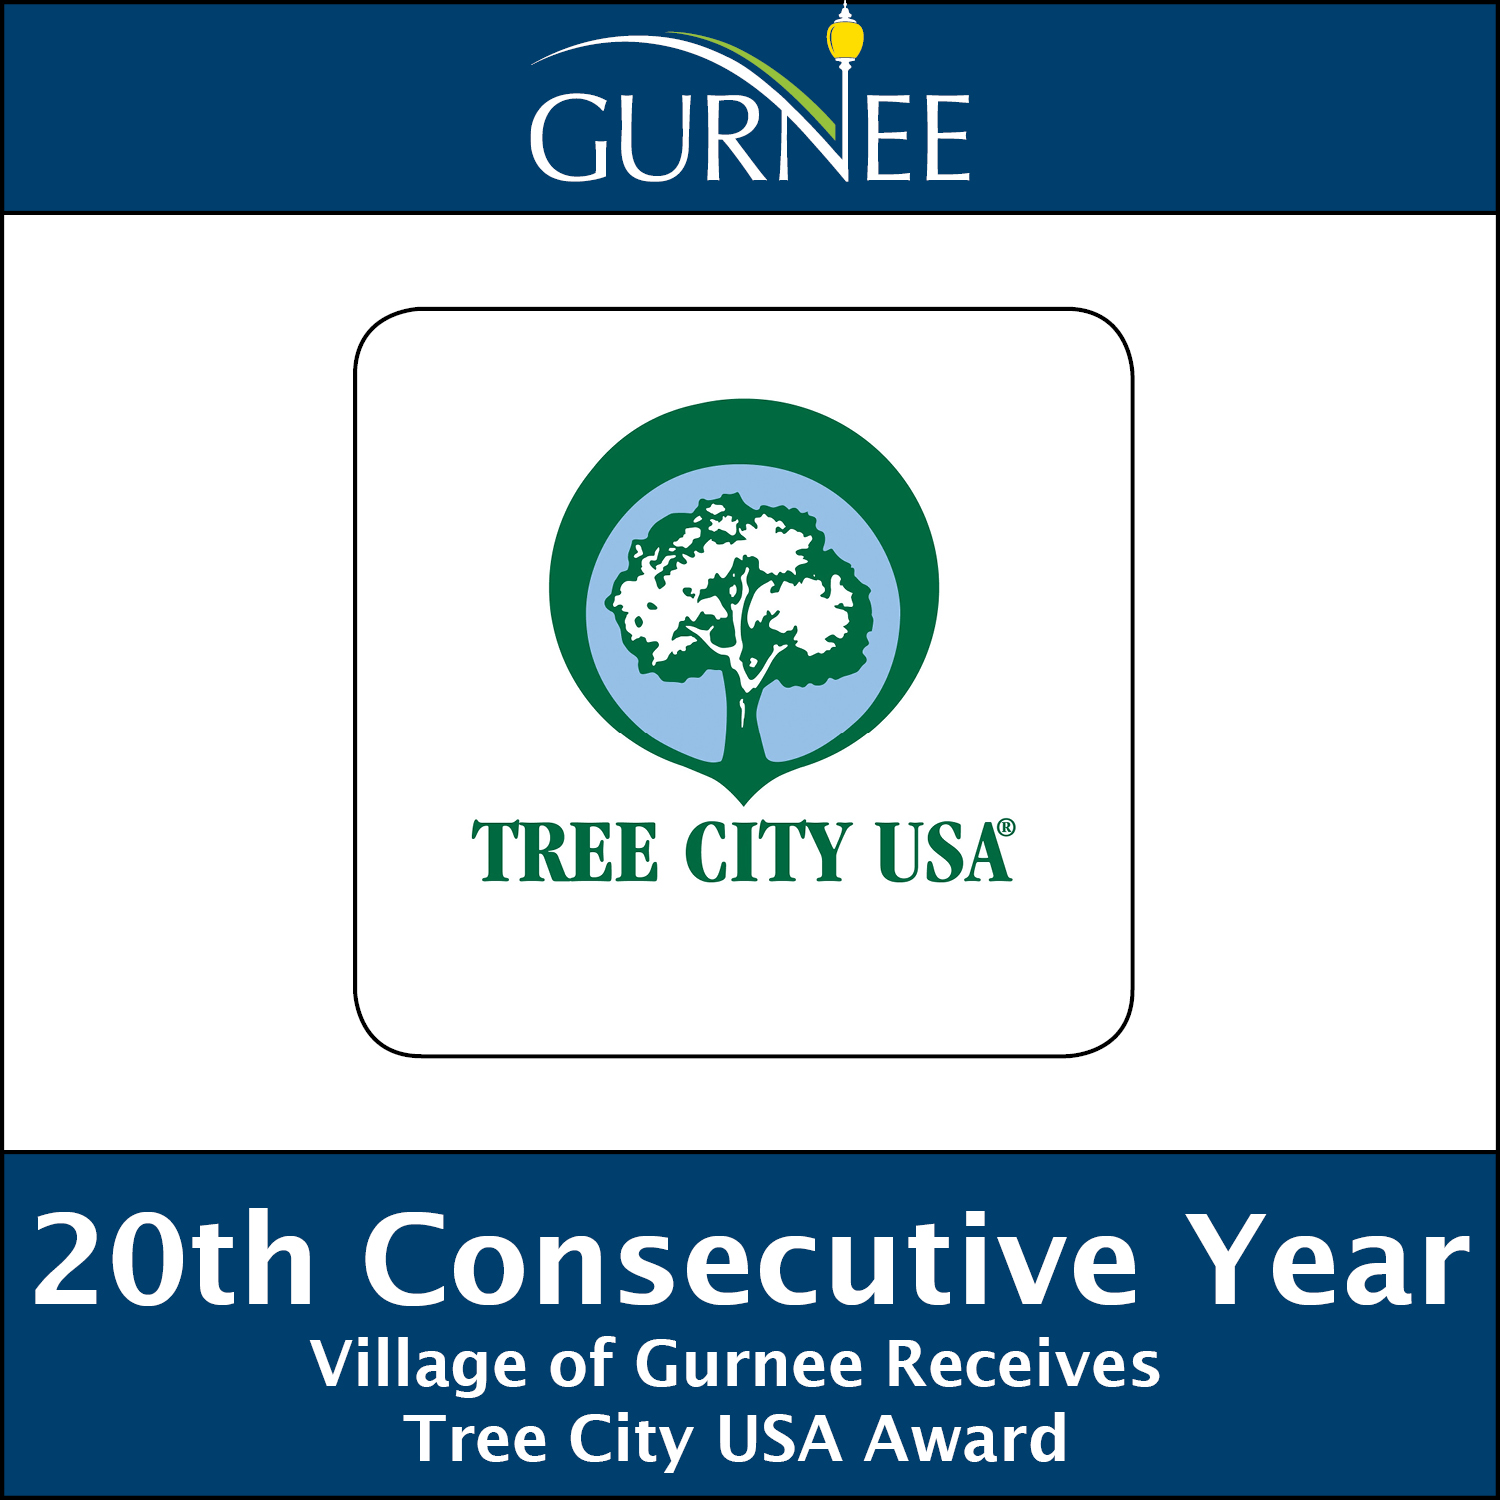 Arbor Day Foundation Names Gurnee Tree City USA for 20th Year